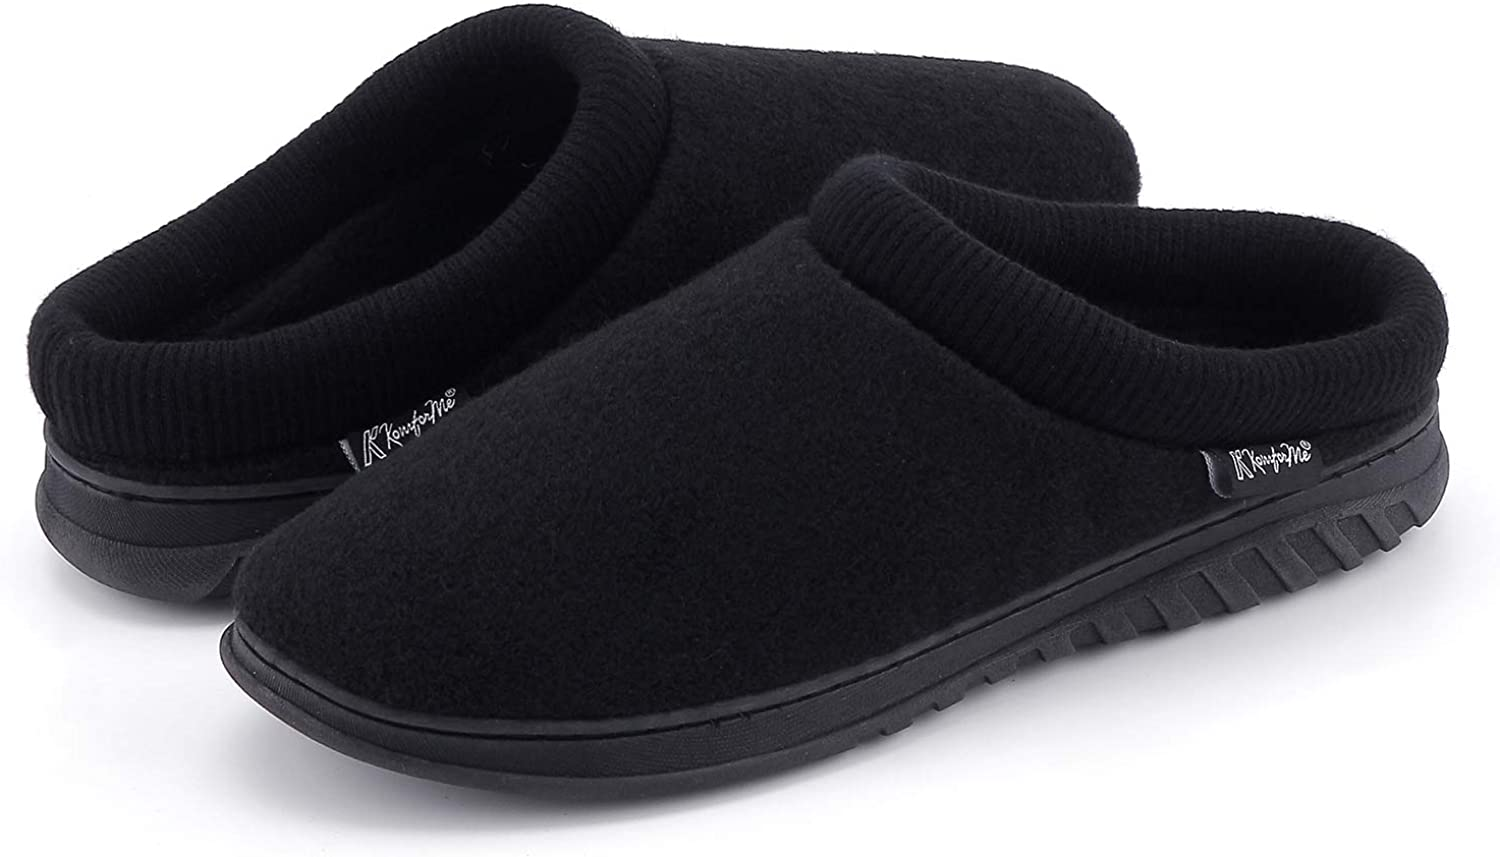 K KomForme Slippers for Men Cotton Memory Foam Slip on Indoor and Outdoor Winter House Shoes